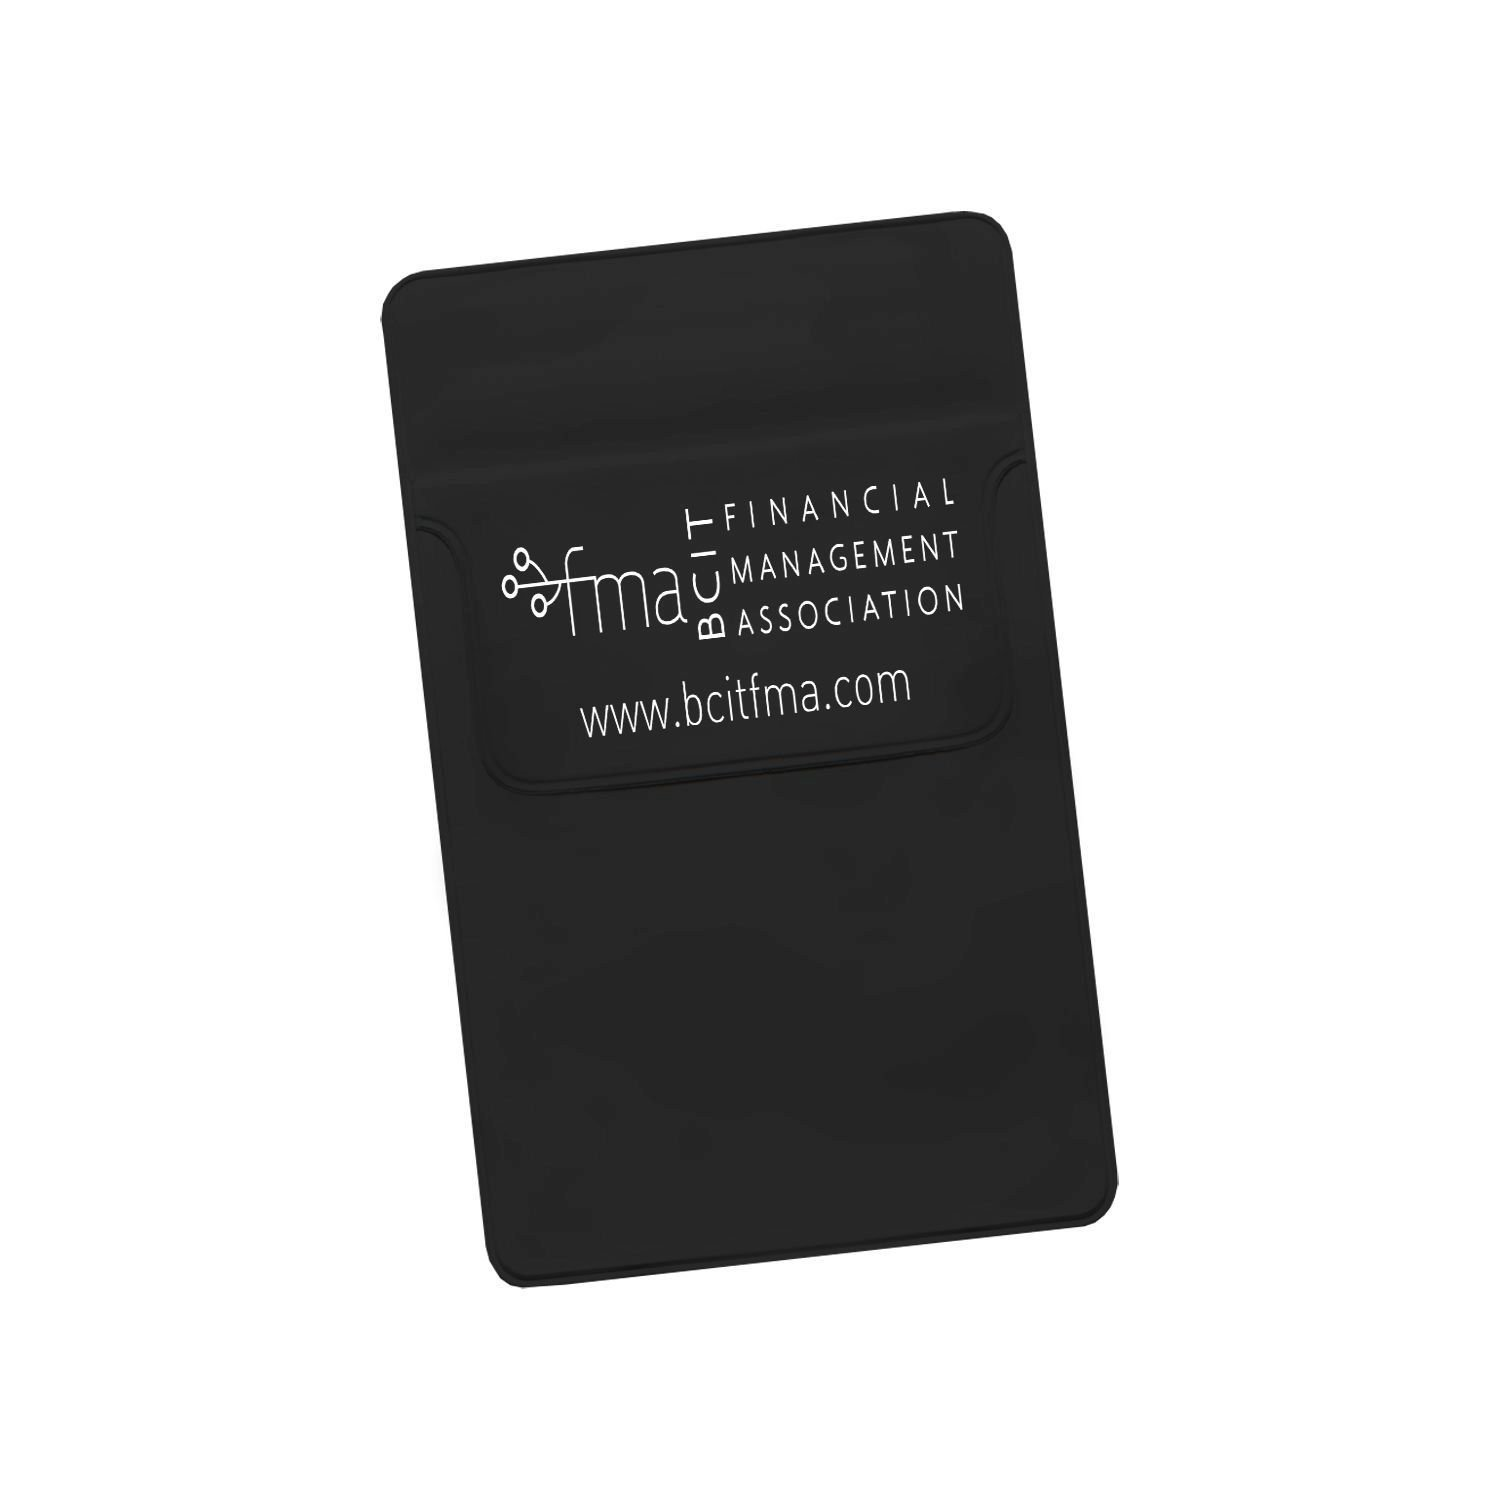 Promos With Imprint Personalized Pocket Protector 1 3/4 Flap -300 per Package- Bulk by Promos With Imprint